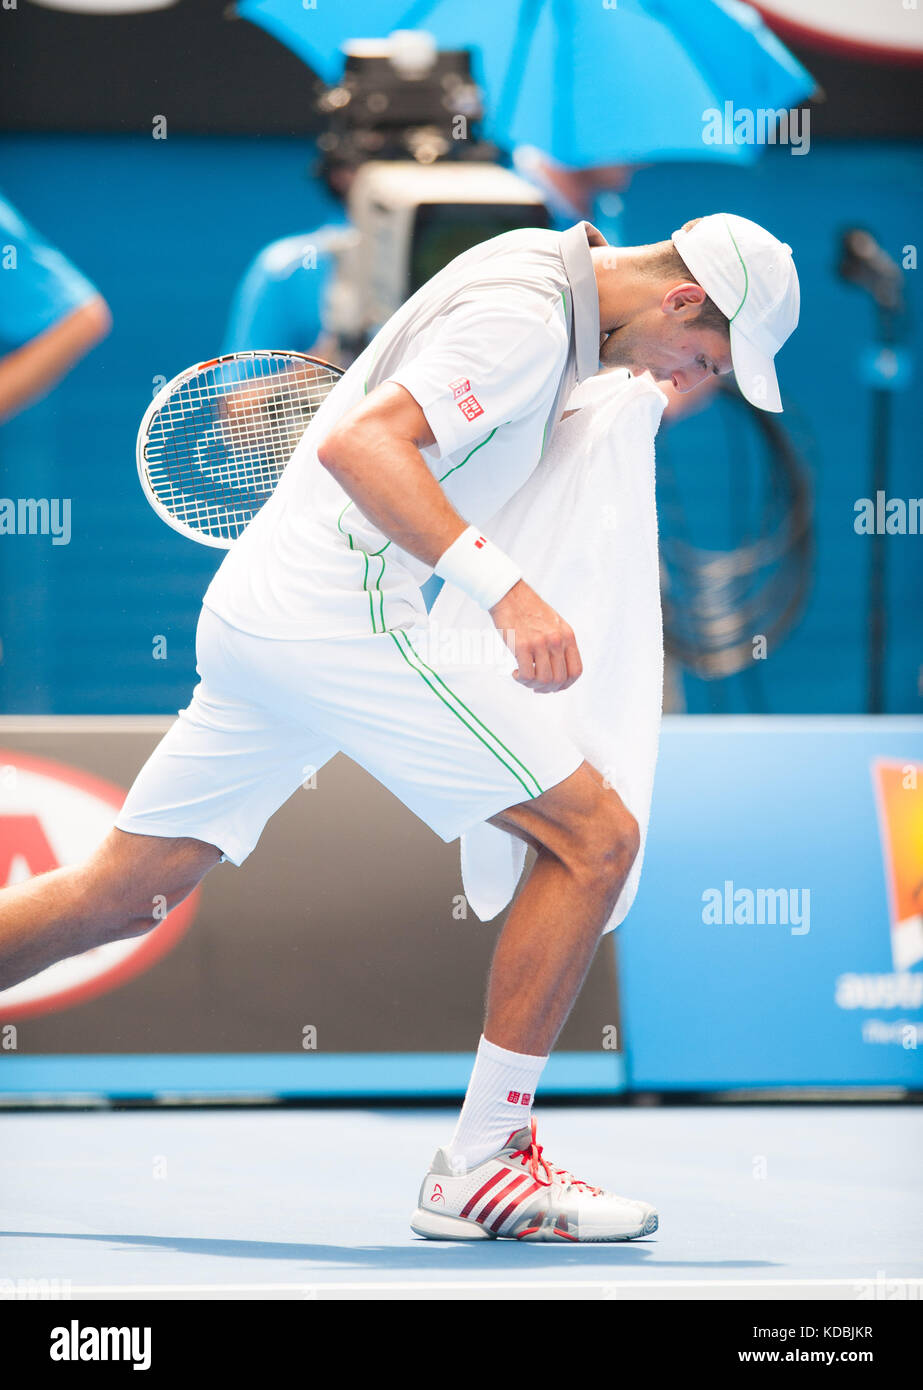 Defending Australian Open Champion Novak Djokovic (SRB) took on L. Mayer (ARG) in third day, second round play. - Stock Image